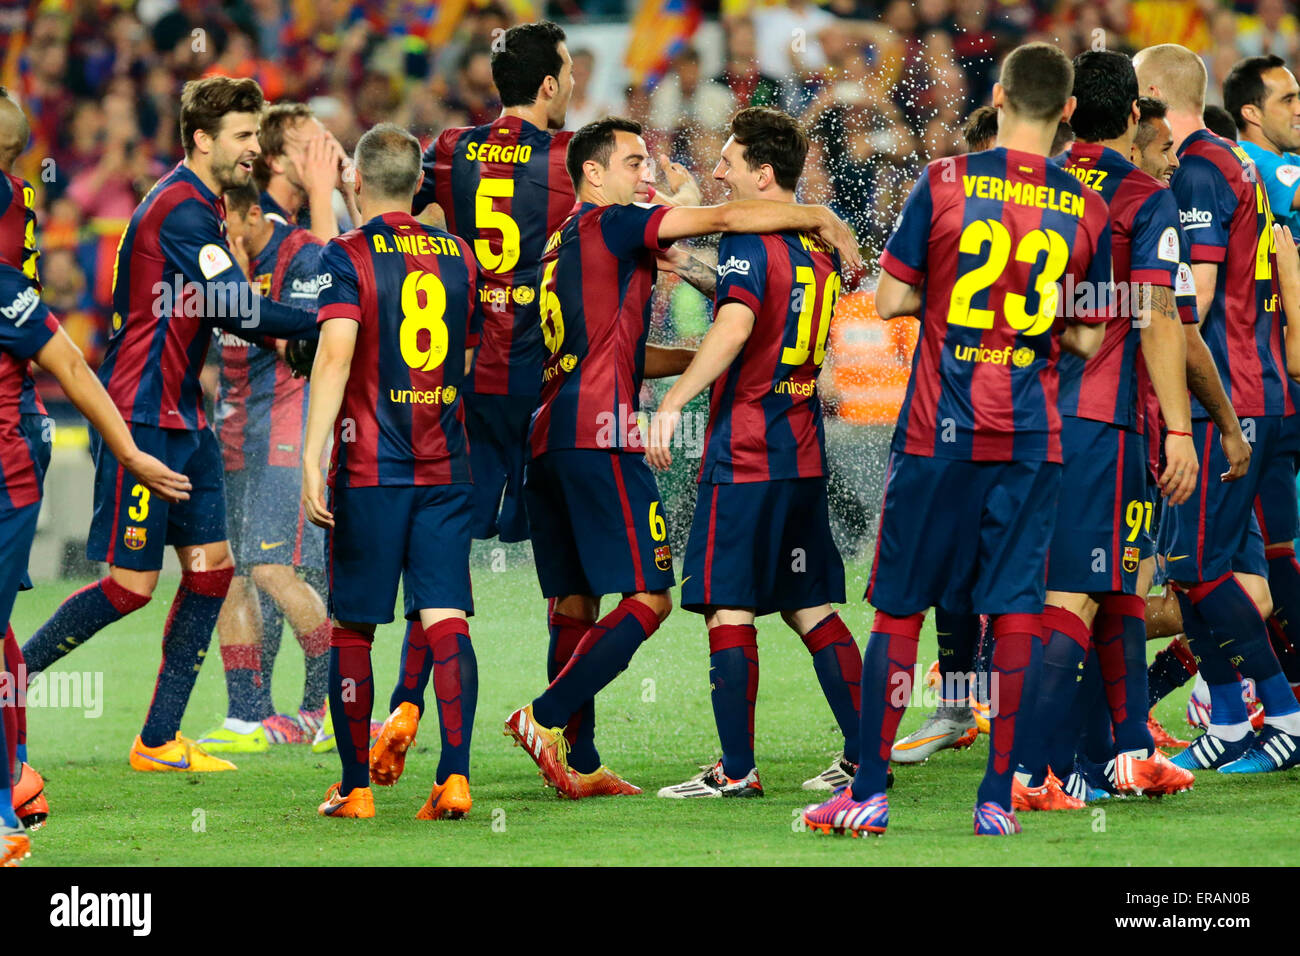 (150531) --BARCELONA, May 31, 2015 (Xinhua) -- Players of Barcelona celebrate after winning the Copa del Rey (King's - Stock Image